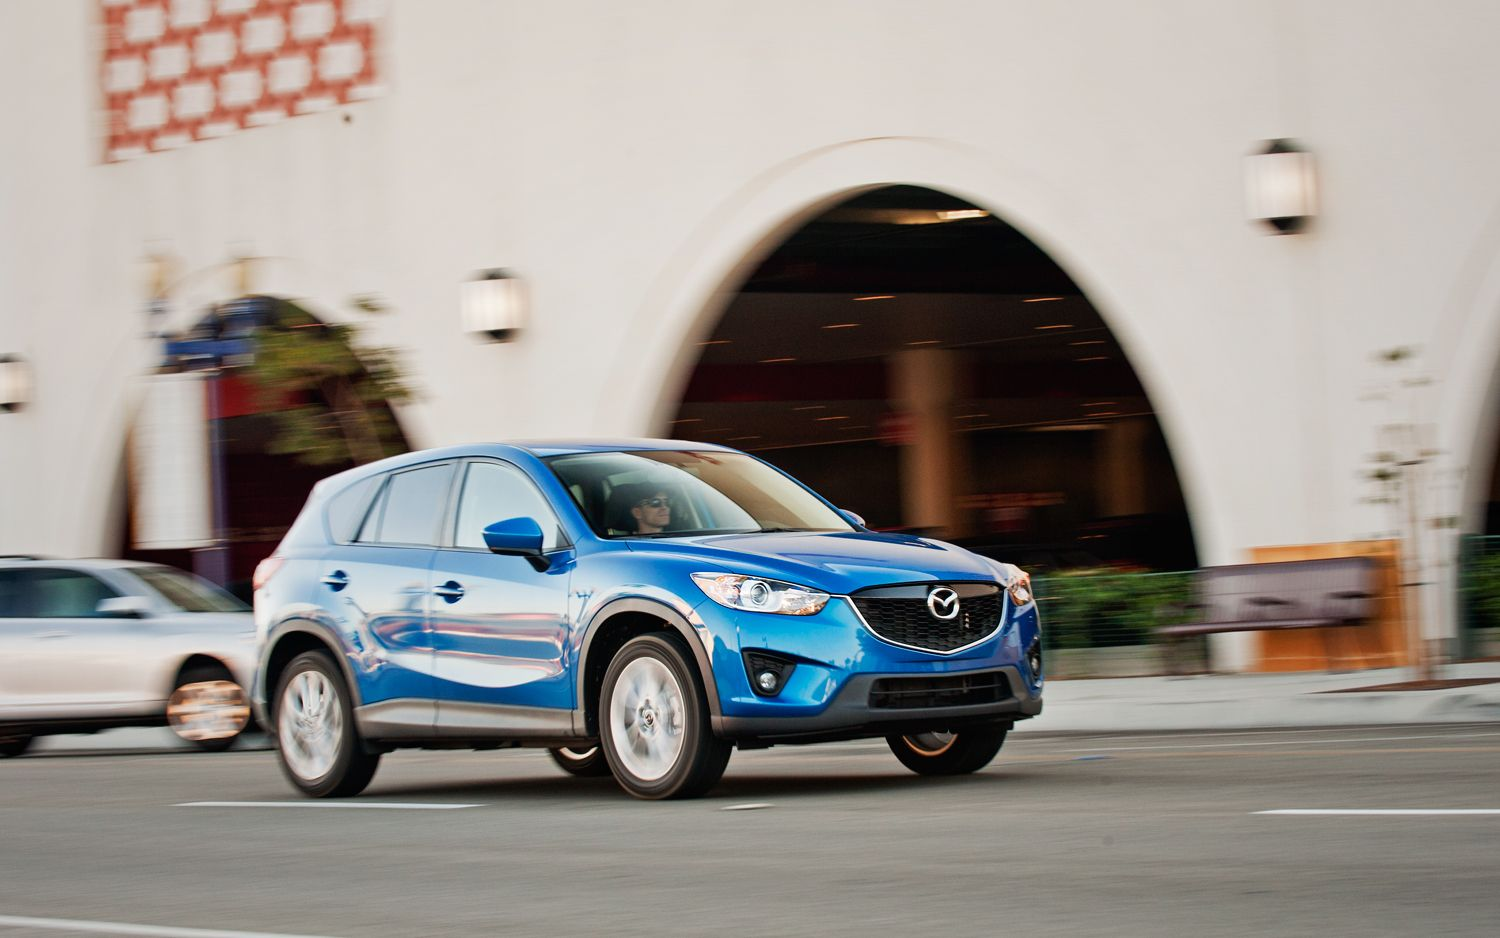 2013 Mazda Cx 5 Grand Touring Fwd Long Term Update 1 Motor Trend